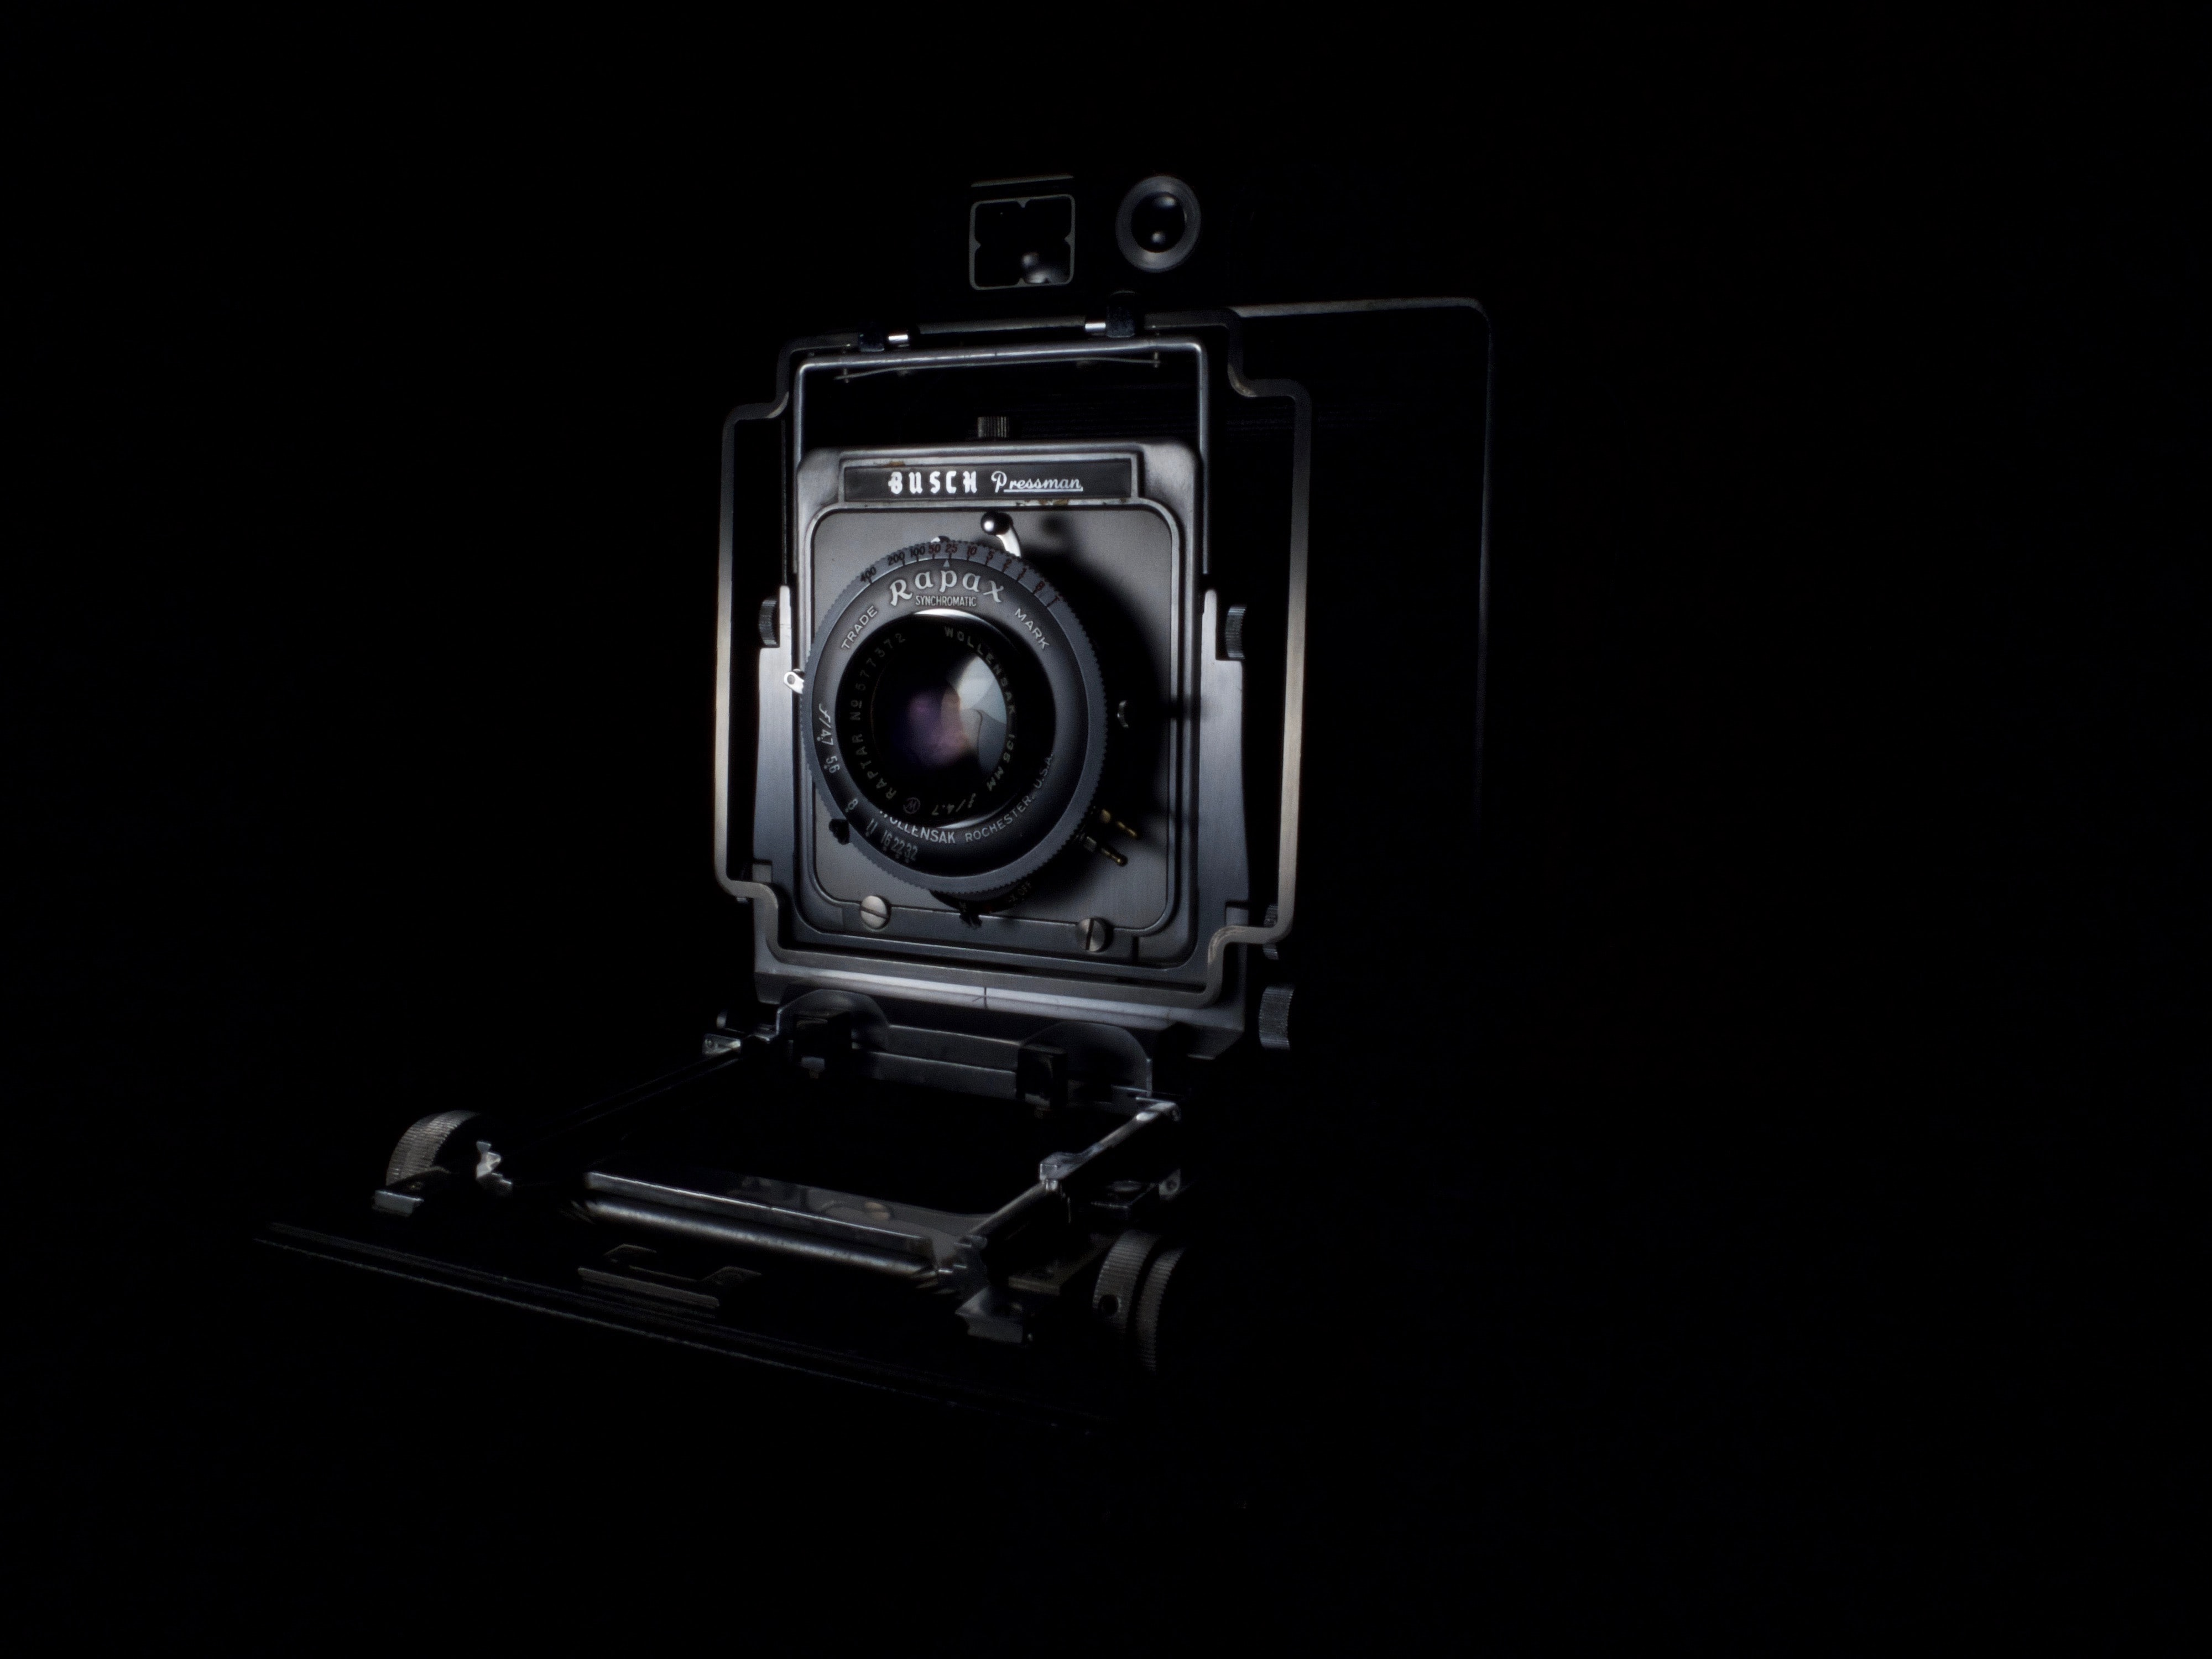 low light photography of vintage camera